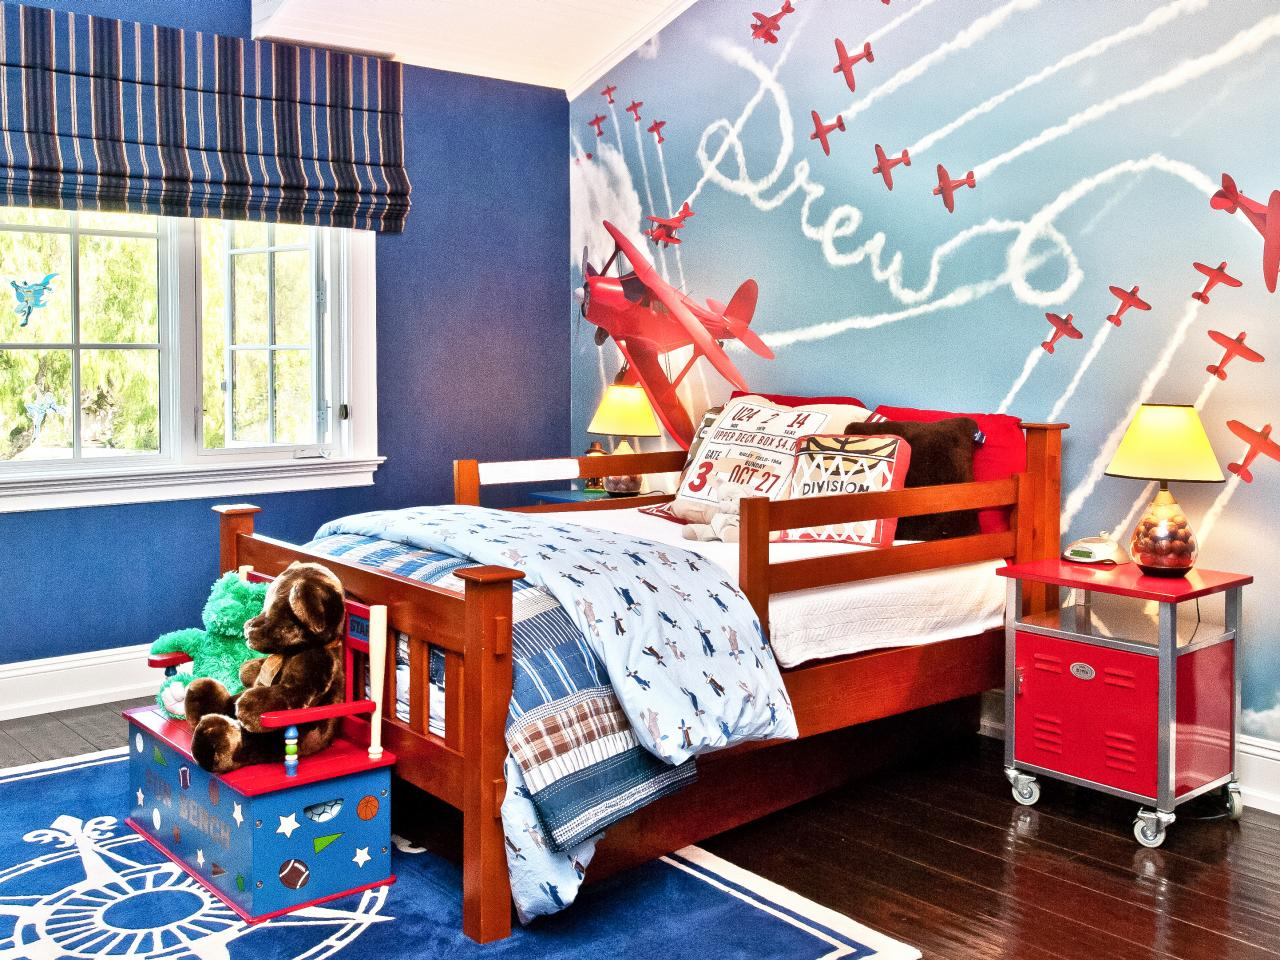 Child Bedroom Interior Design choosing a kid's room theme | hgtv